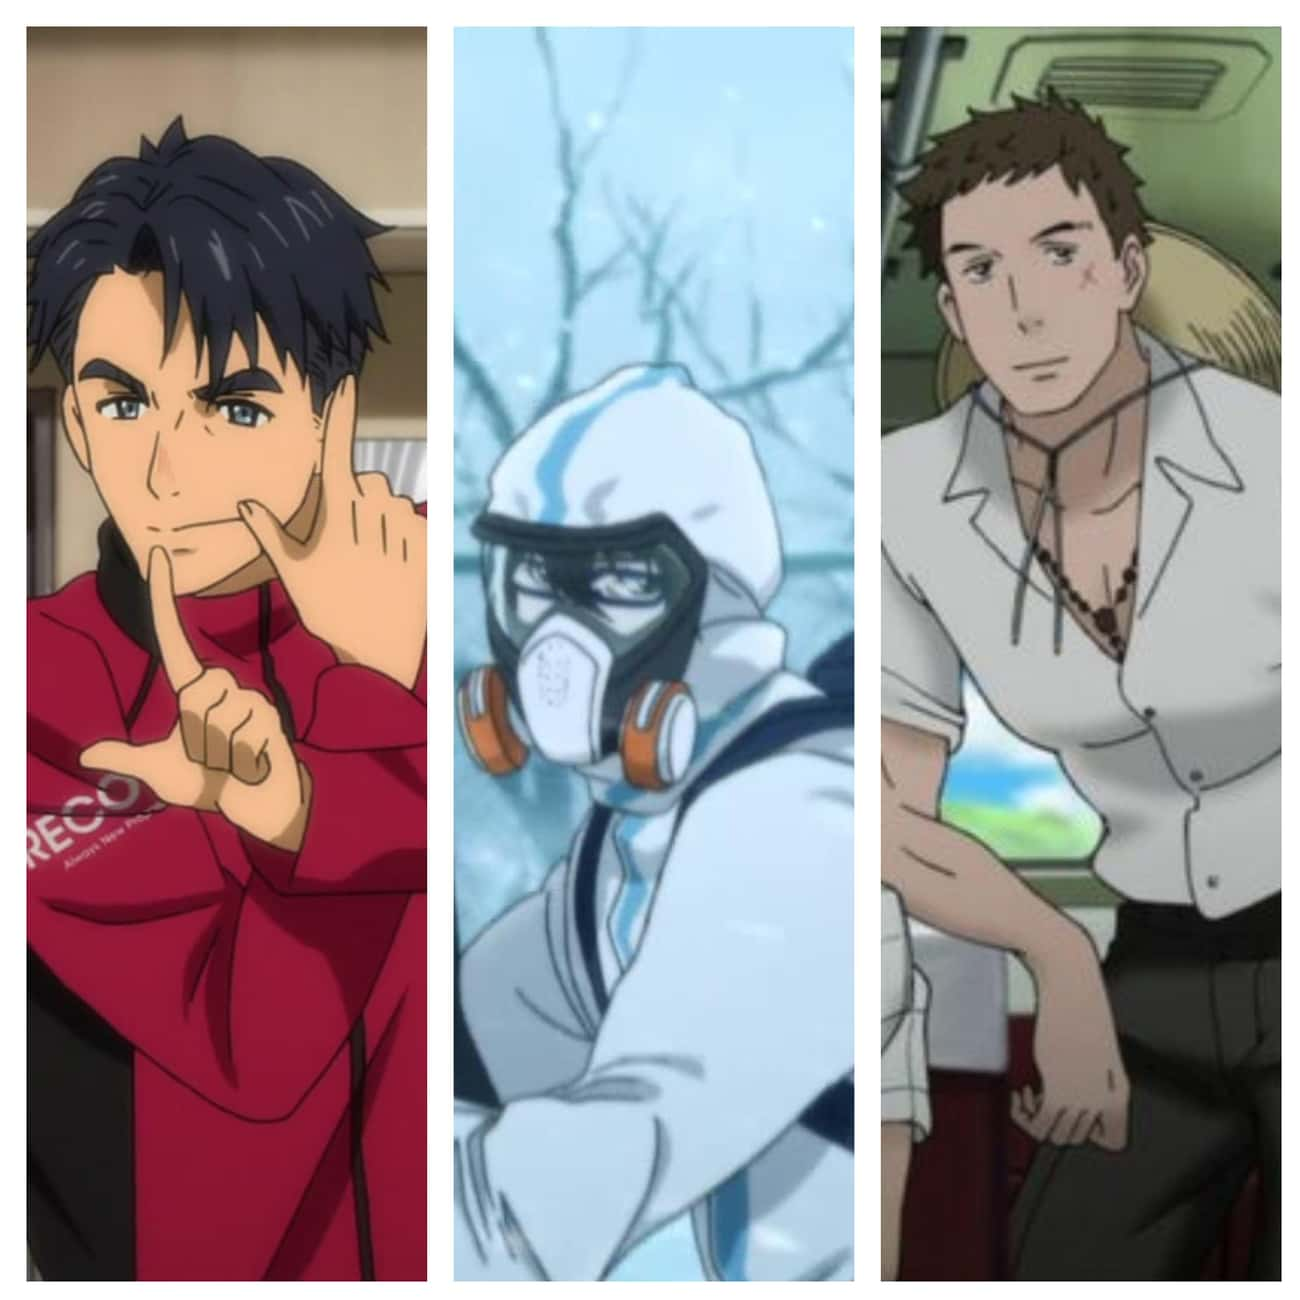 MAPPA is listed (or ranked) 9 on the list The Greatest Anime Studios of All Time, Ranked